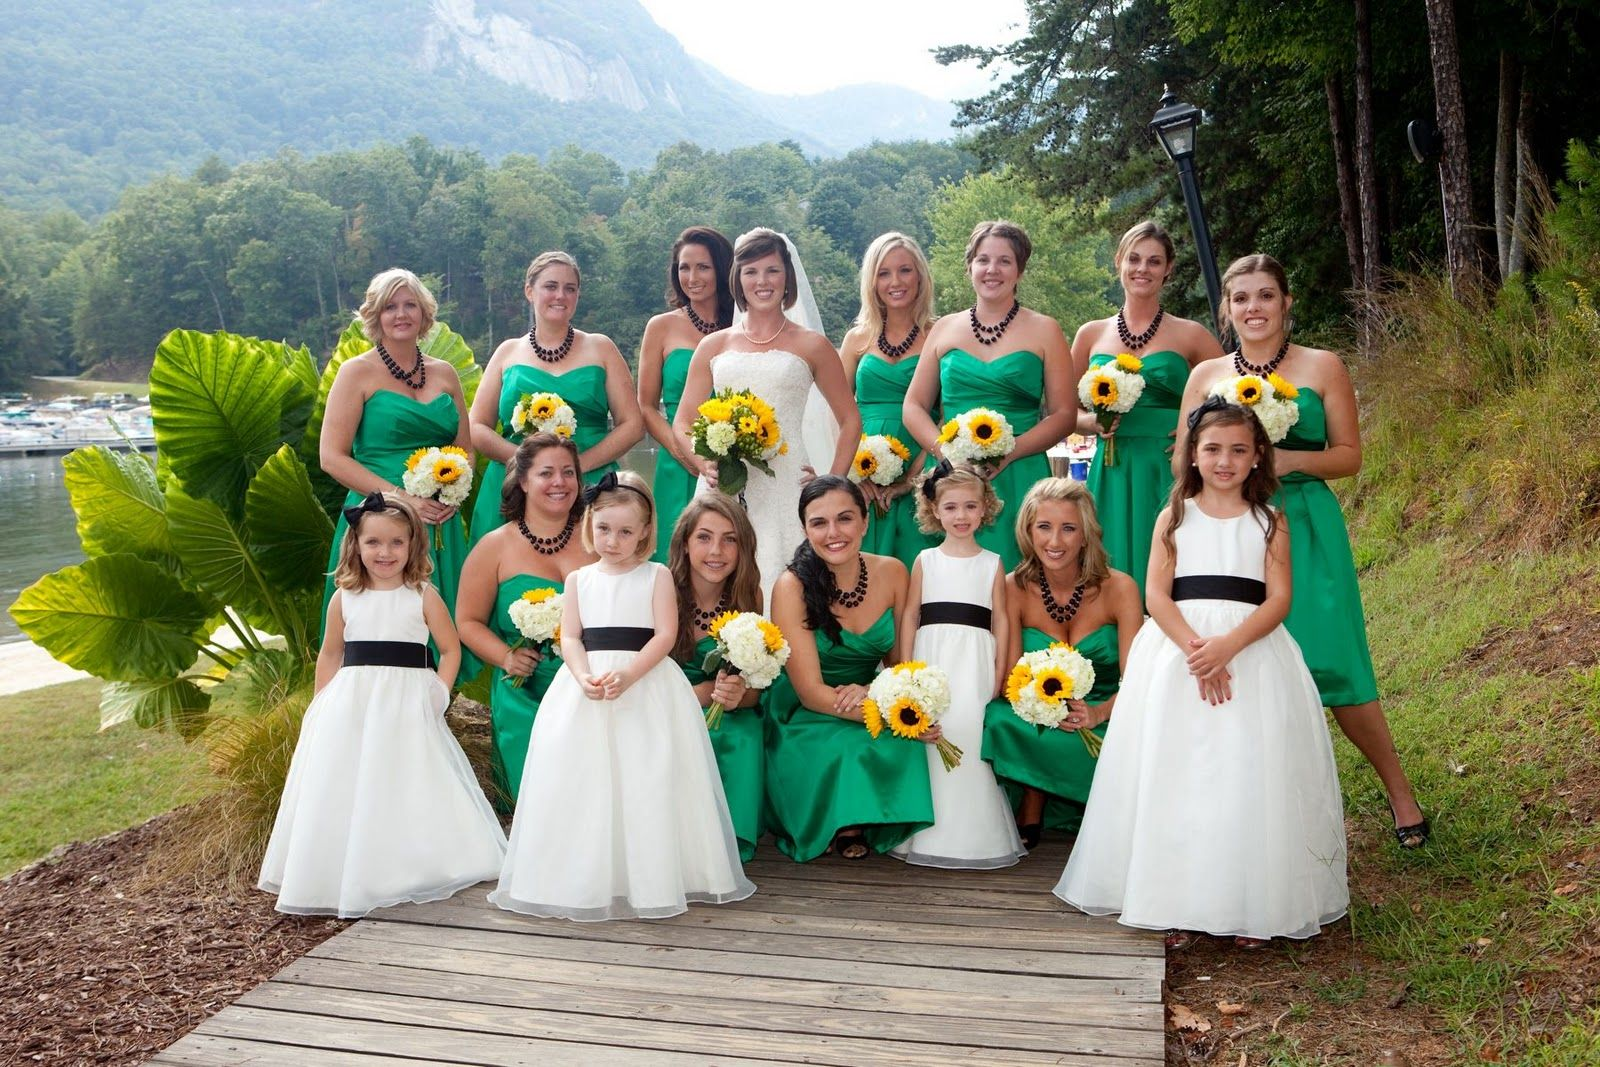 Pix for kelly green wedding wedding bridesmaids pinterest pix for kelly green wedding ombrellifo Image collections